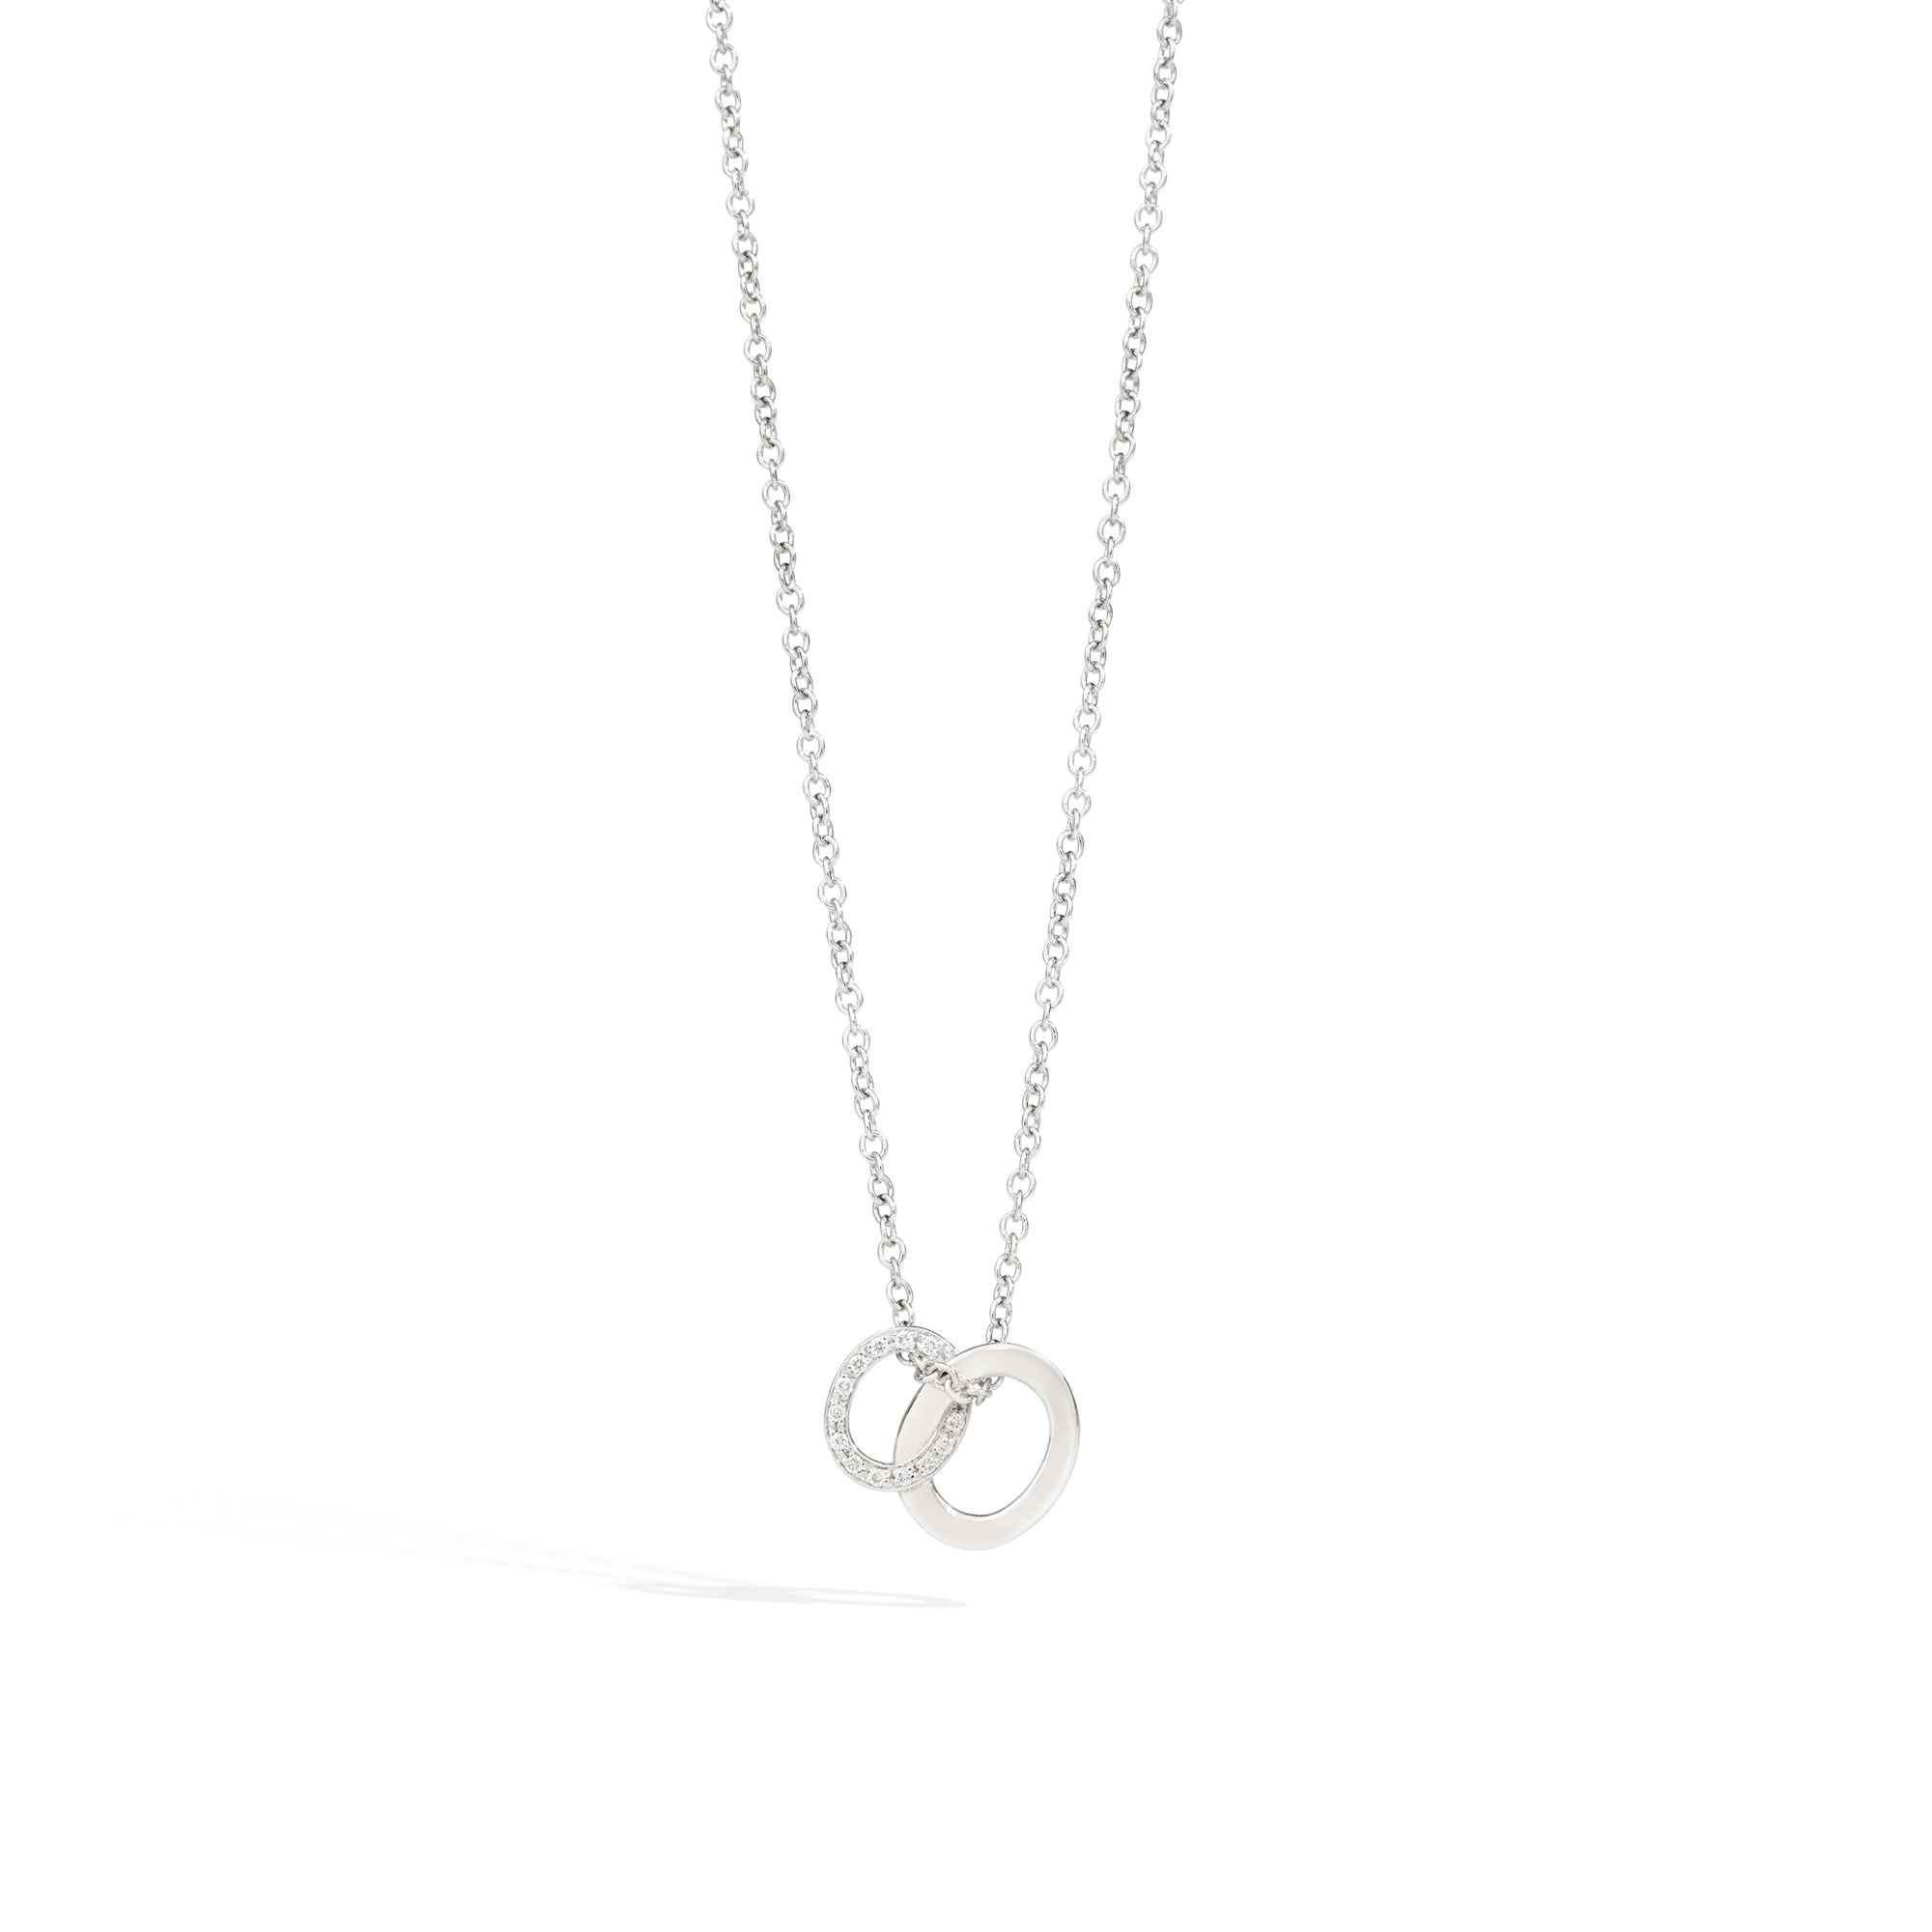 Brera Pendant with Necklace in 18k Rhodium-plated White Gold with Diamonds - Orsini Jewellers NZ